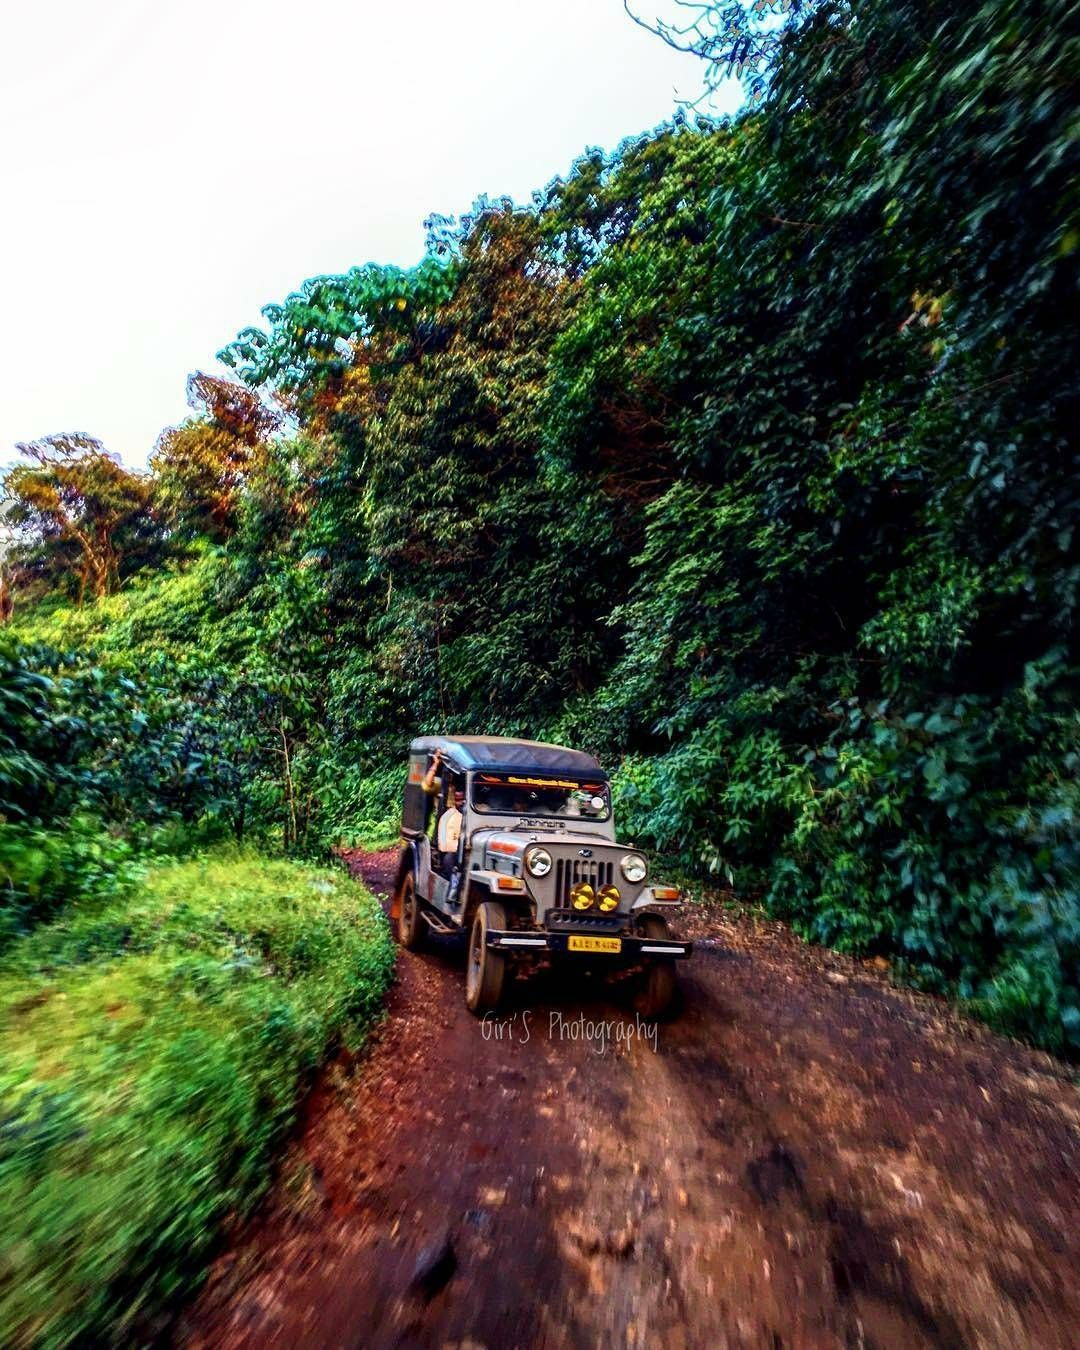 Pure Awesomeness Jeep Ride Girisachin96 Photography